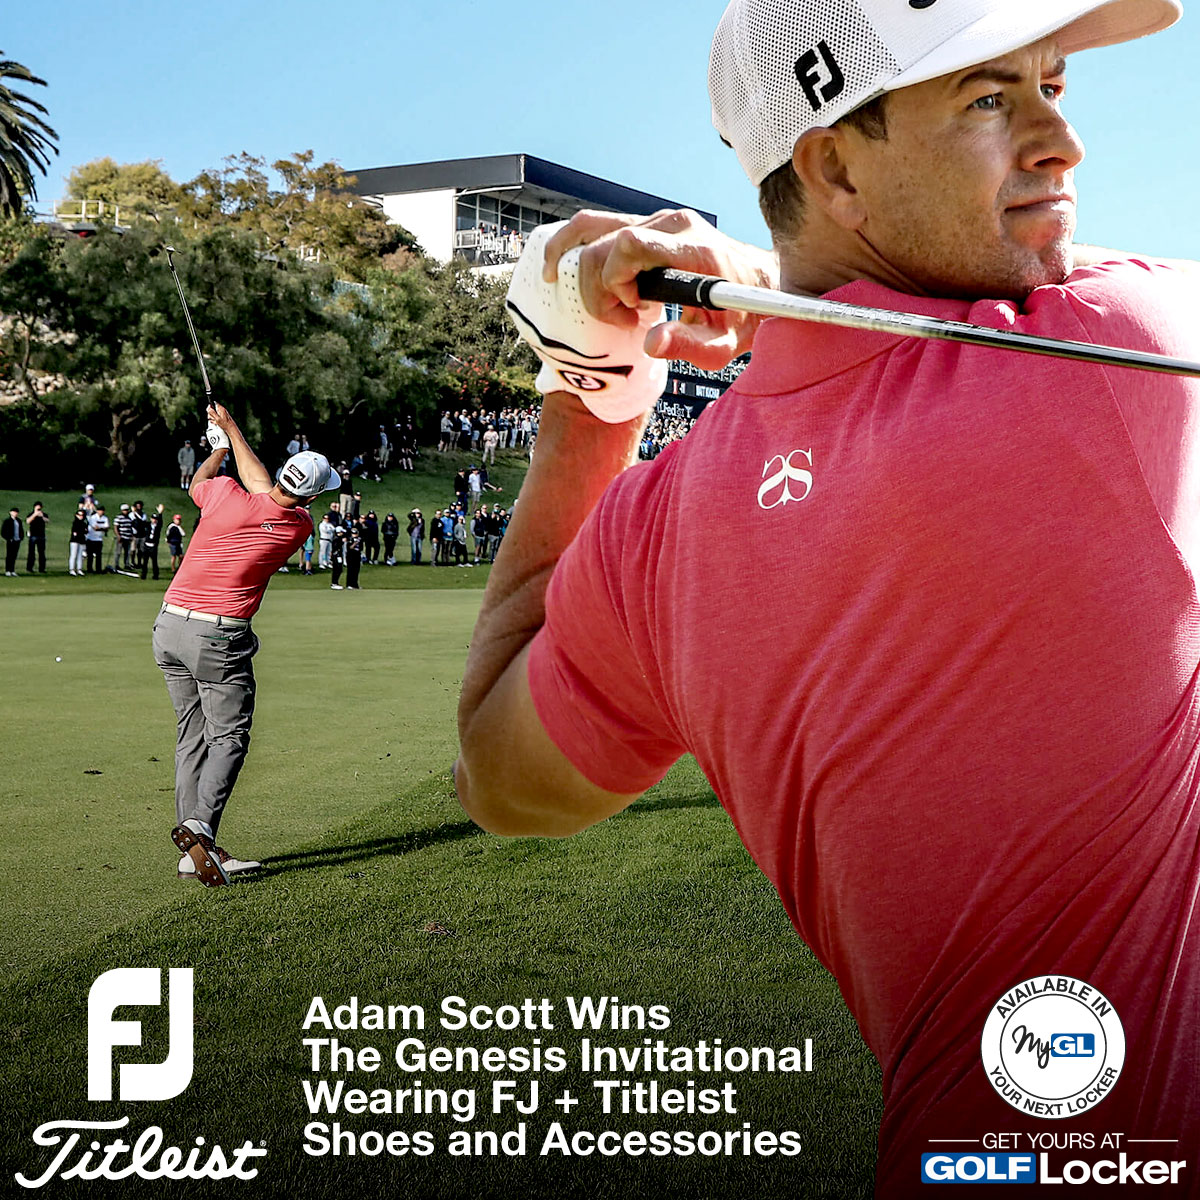 Adam Scott Wins the Genesis Invitational Wearing FJ and Titleist Shoes and Accessories